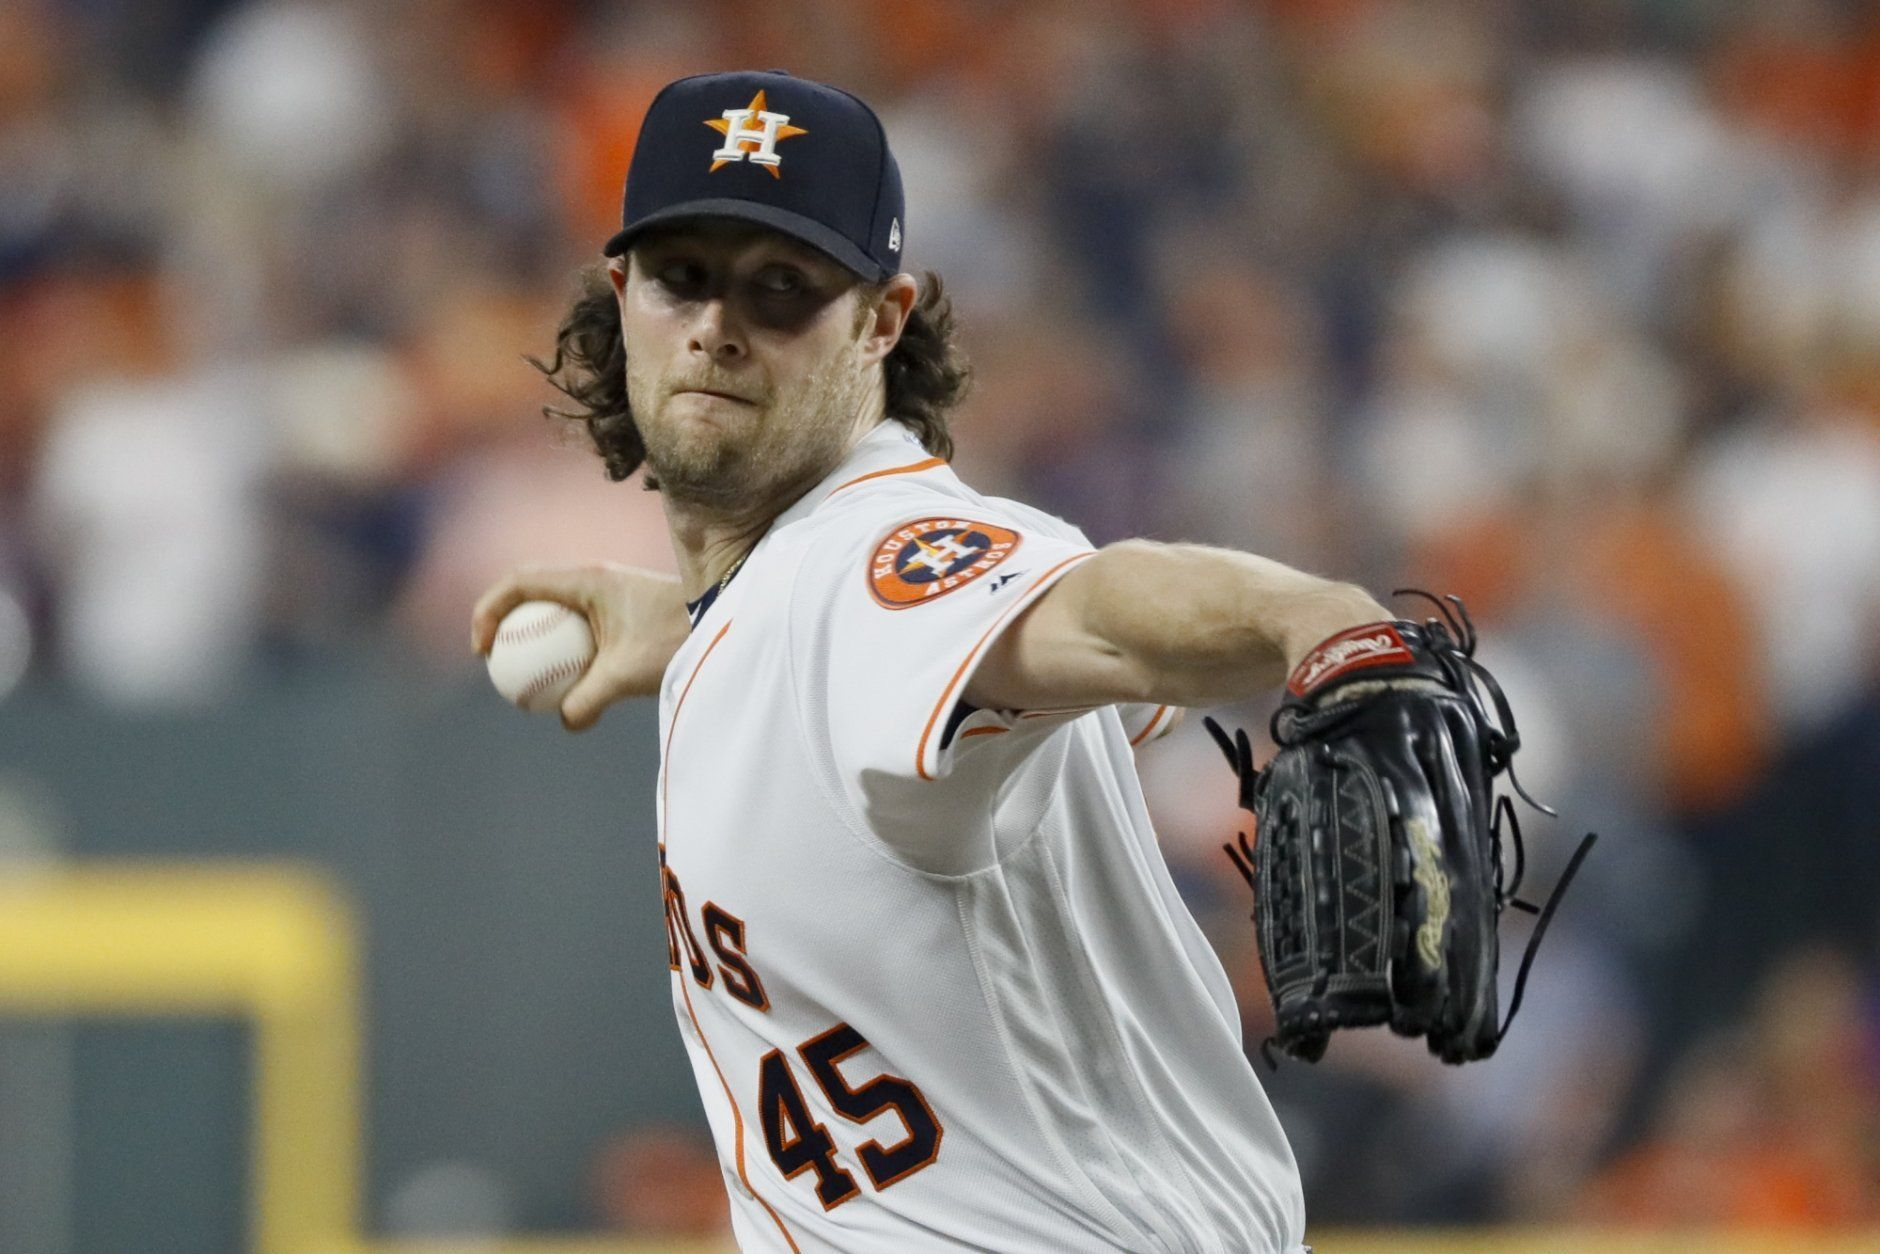 <p><strong>American League Cy Young</strong></p> <p>Gerrit Cole: 100</p> <p>Justin Verlander: 98.26</p> <p>Shane Bieber: 78.87</p> <p>Lance Lynn: 75.83</p> <p>Charlie Morton: 74.83</p> <p>Could Justin Verlander come up just shy in another Cy Young race? He's had an incredible year, leading the league in wins, WHIP, and K/BB rate. He threw a no-hitter for the team with the best regular season record in baseball. That's all a pretty good recipe for some hardware…in a world without Gerrit Cole. Cole won the ERA title, by a smidgen over Verlander. He led the league in strikeouts. If you combined bWAR and fWAR, the two were identical. He also had the highest strikeout rate and lowest FIP, all of which was just enough to give him the nod in the model. We already know Morton will actually finish third, which isn't all that surprising given how tightly-bunched the rest of the pack is behind the top two.</p>